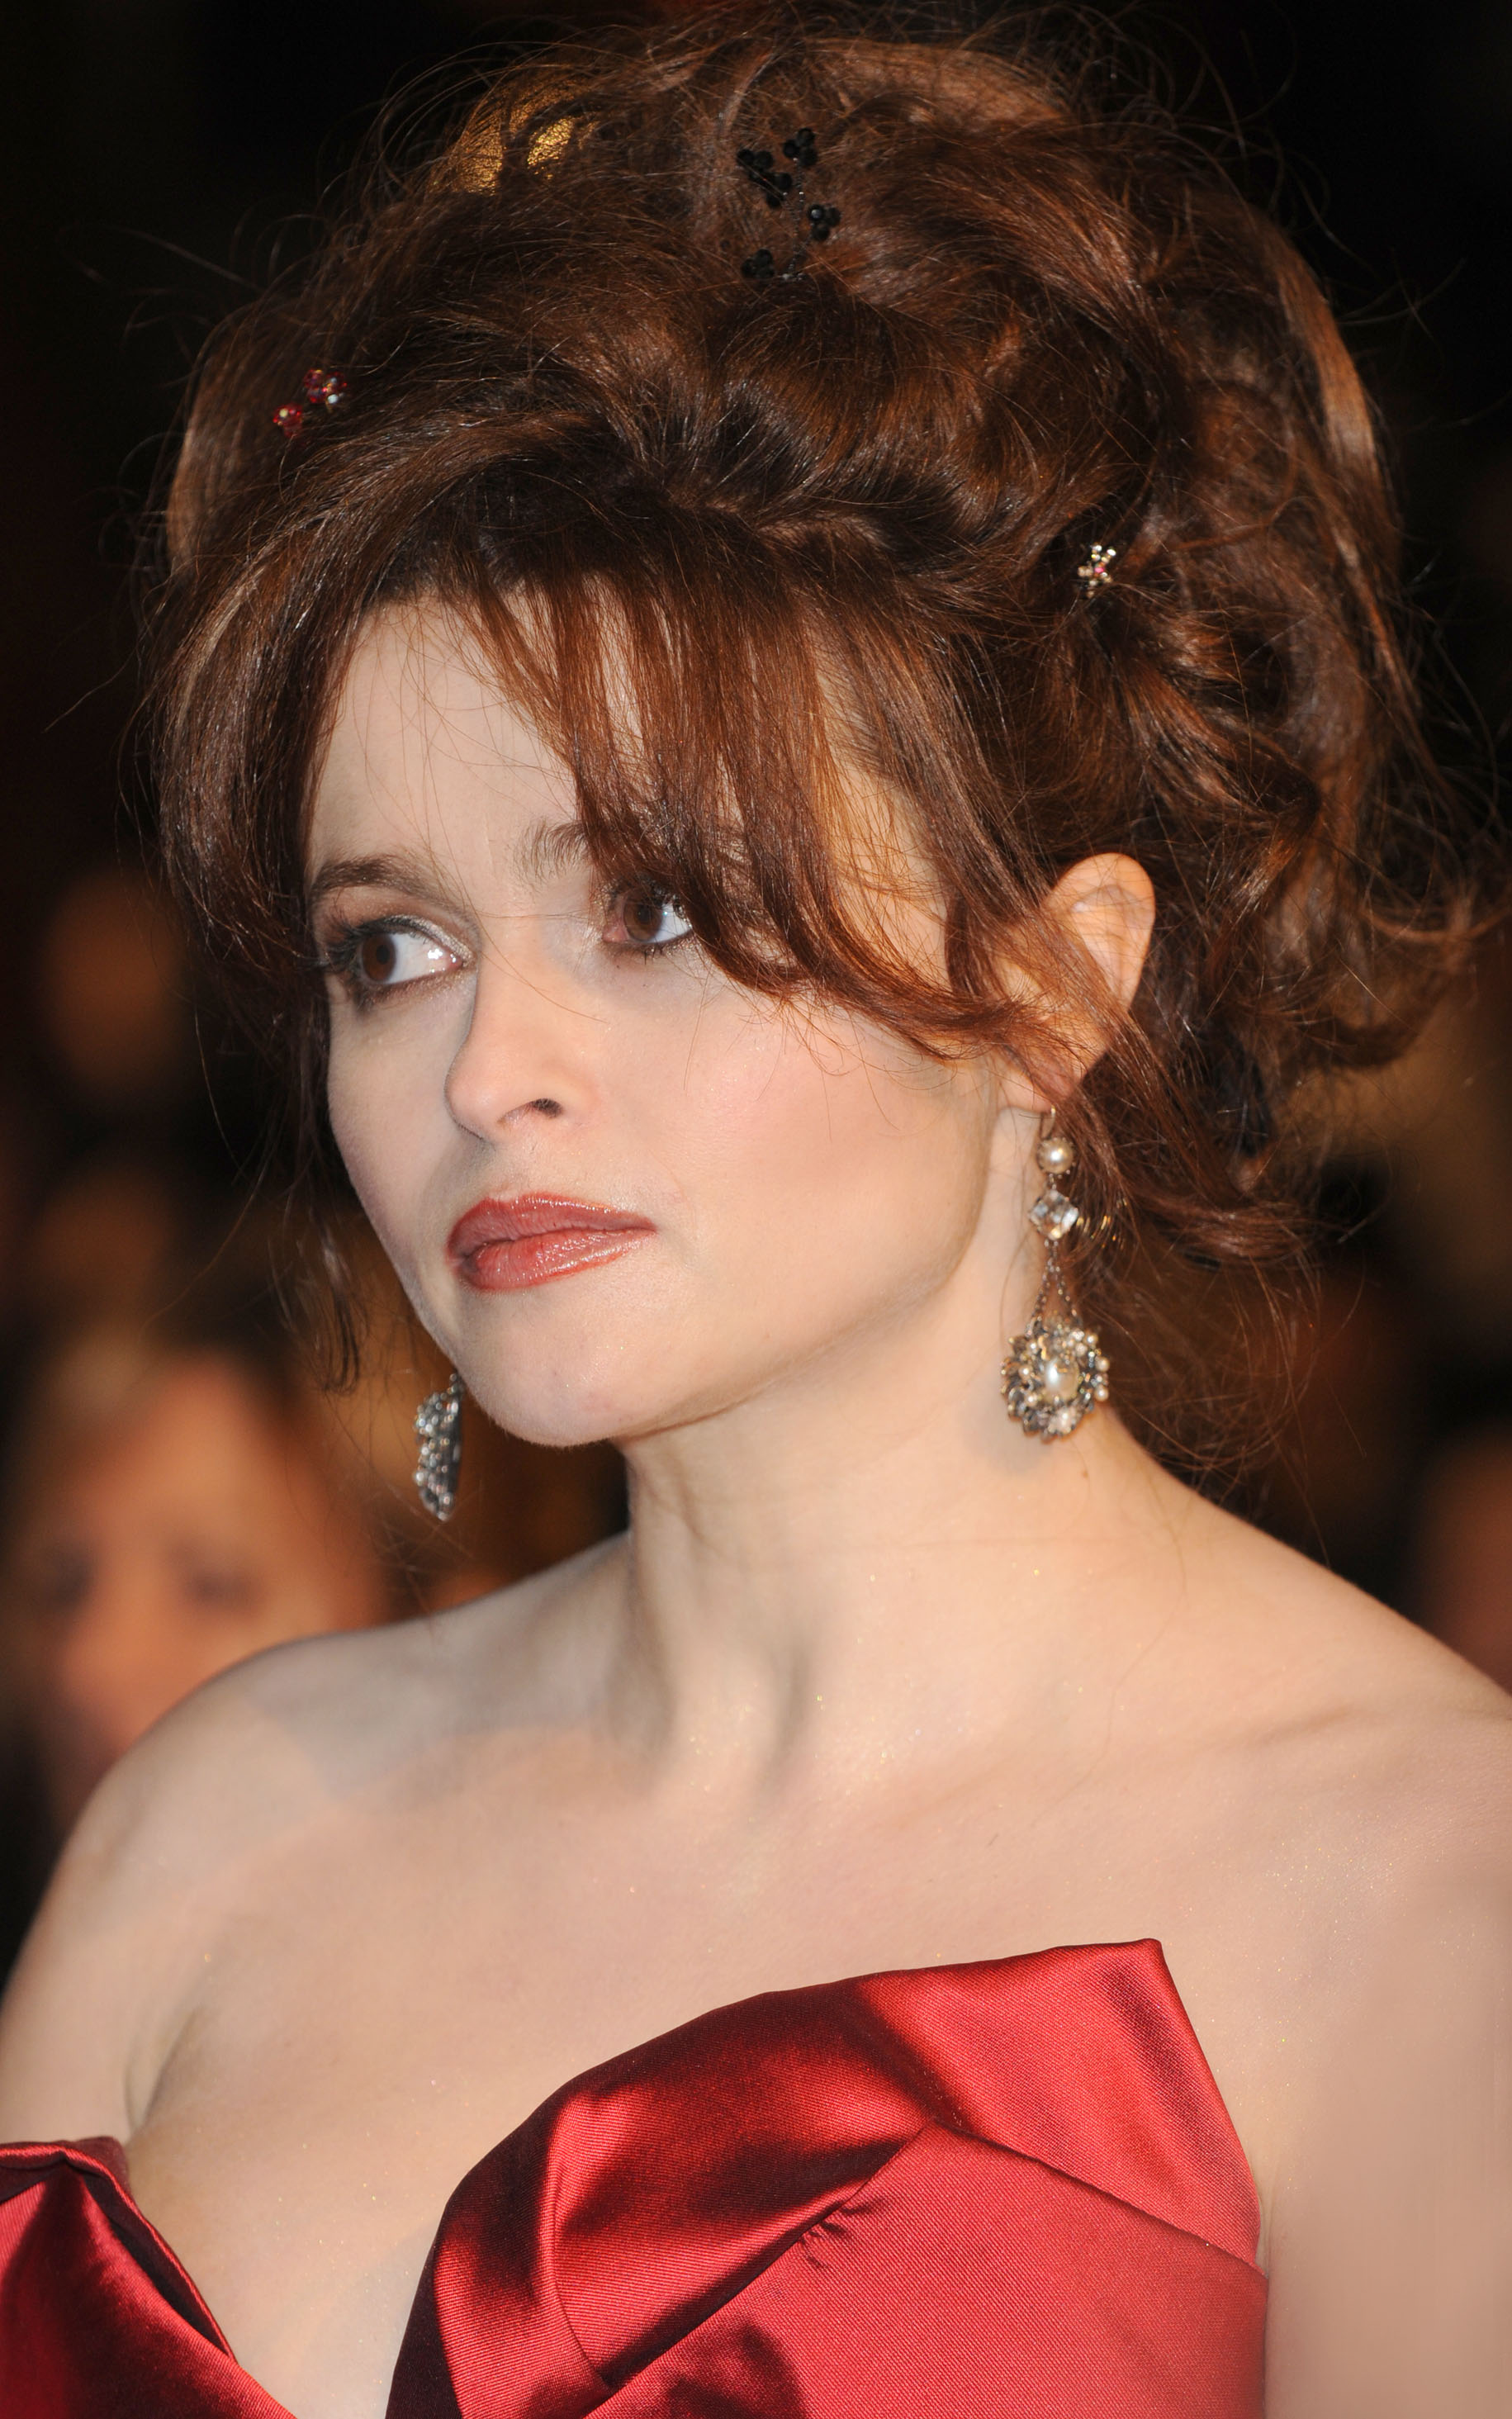 Helena Bonham Carter | Sweeney Todd Wiki | Fandom powered ... Helena Bonham Carter Wikipedia